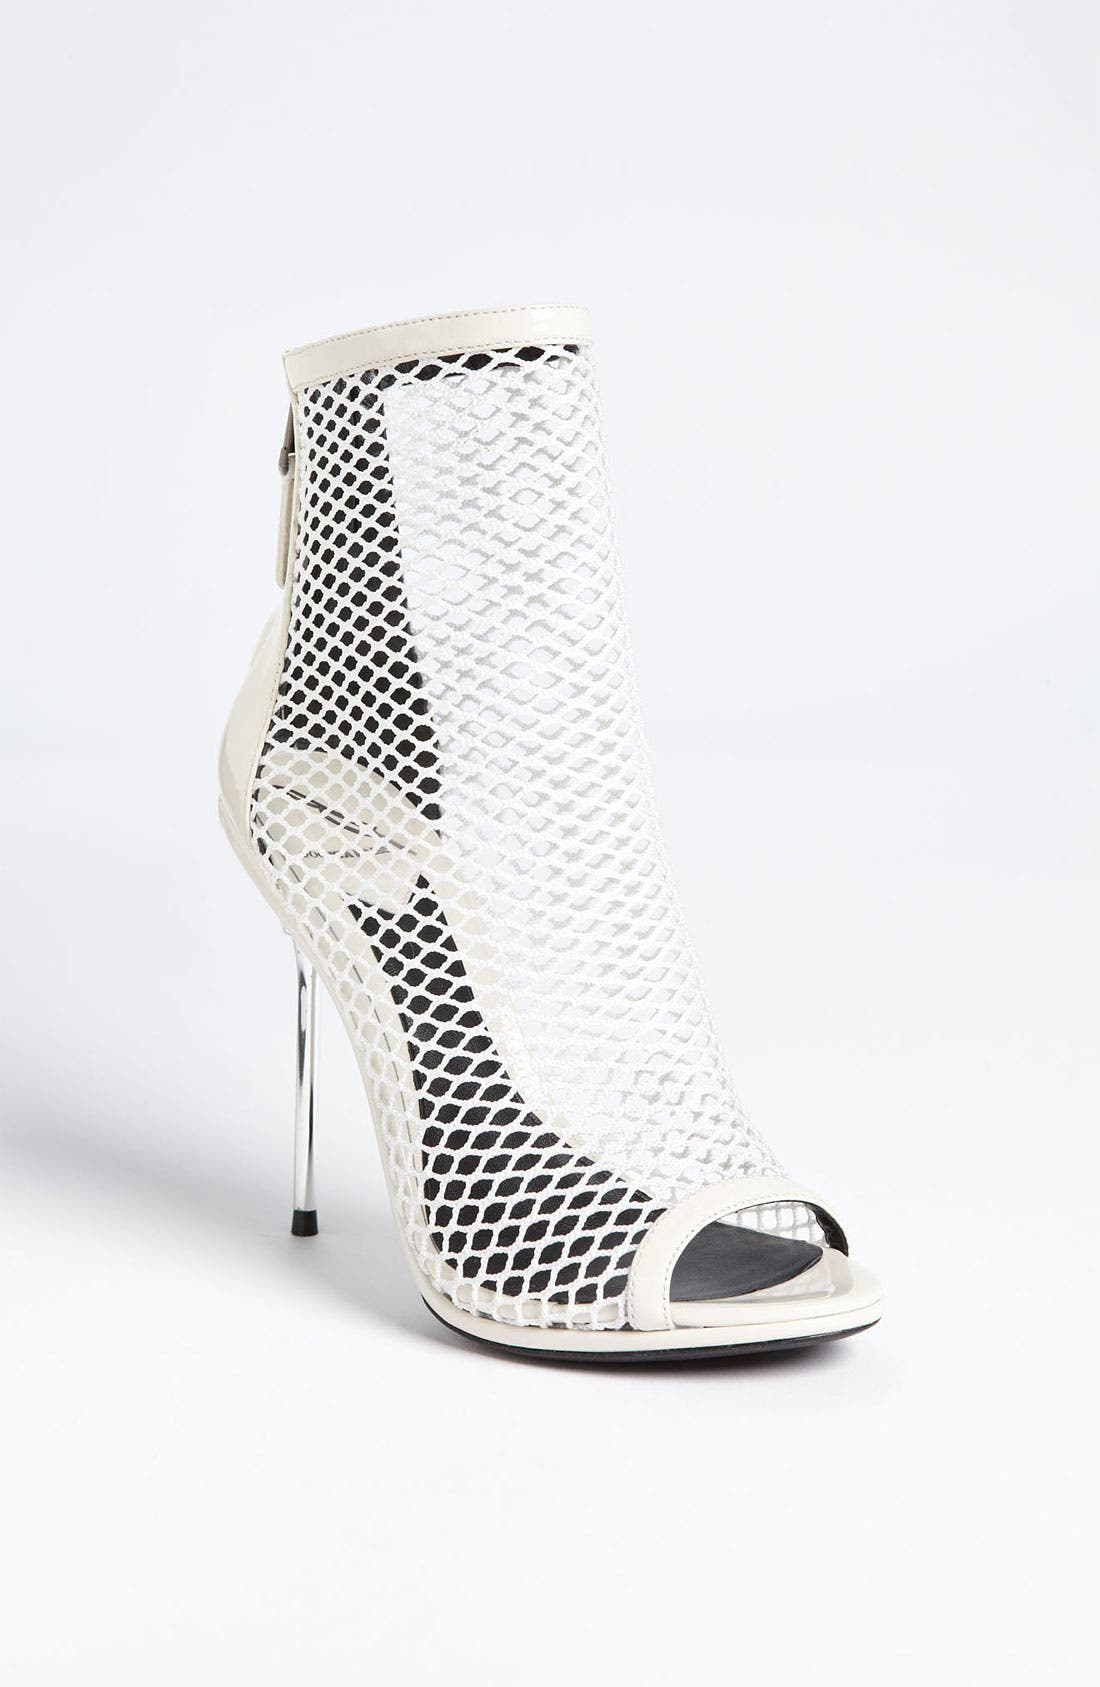 Main Image - B. Brian Atwood 'Michelet' Bootie